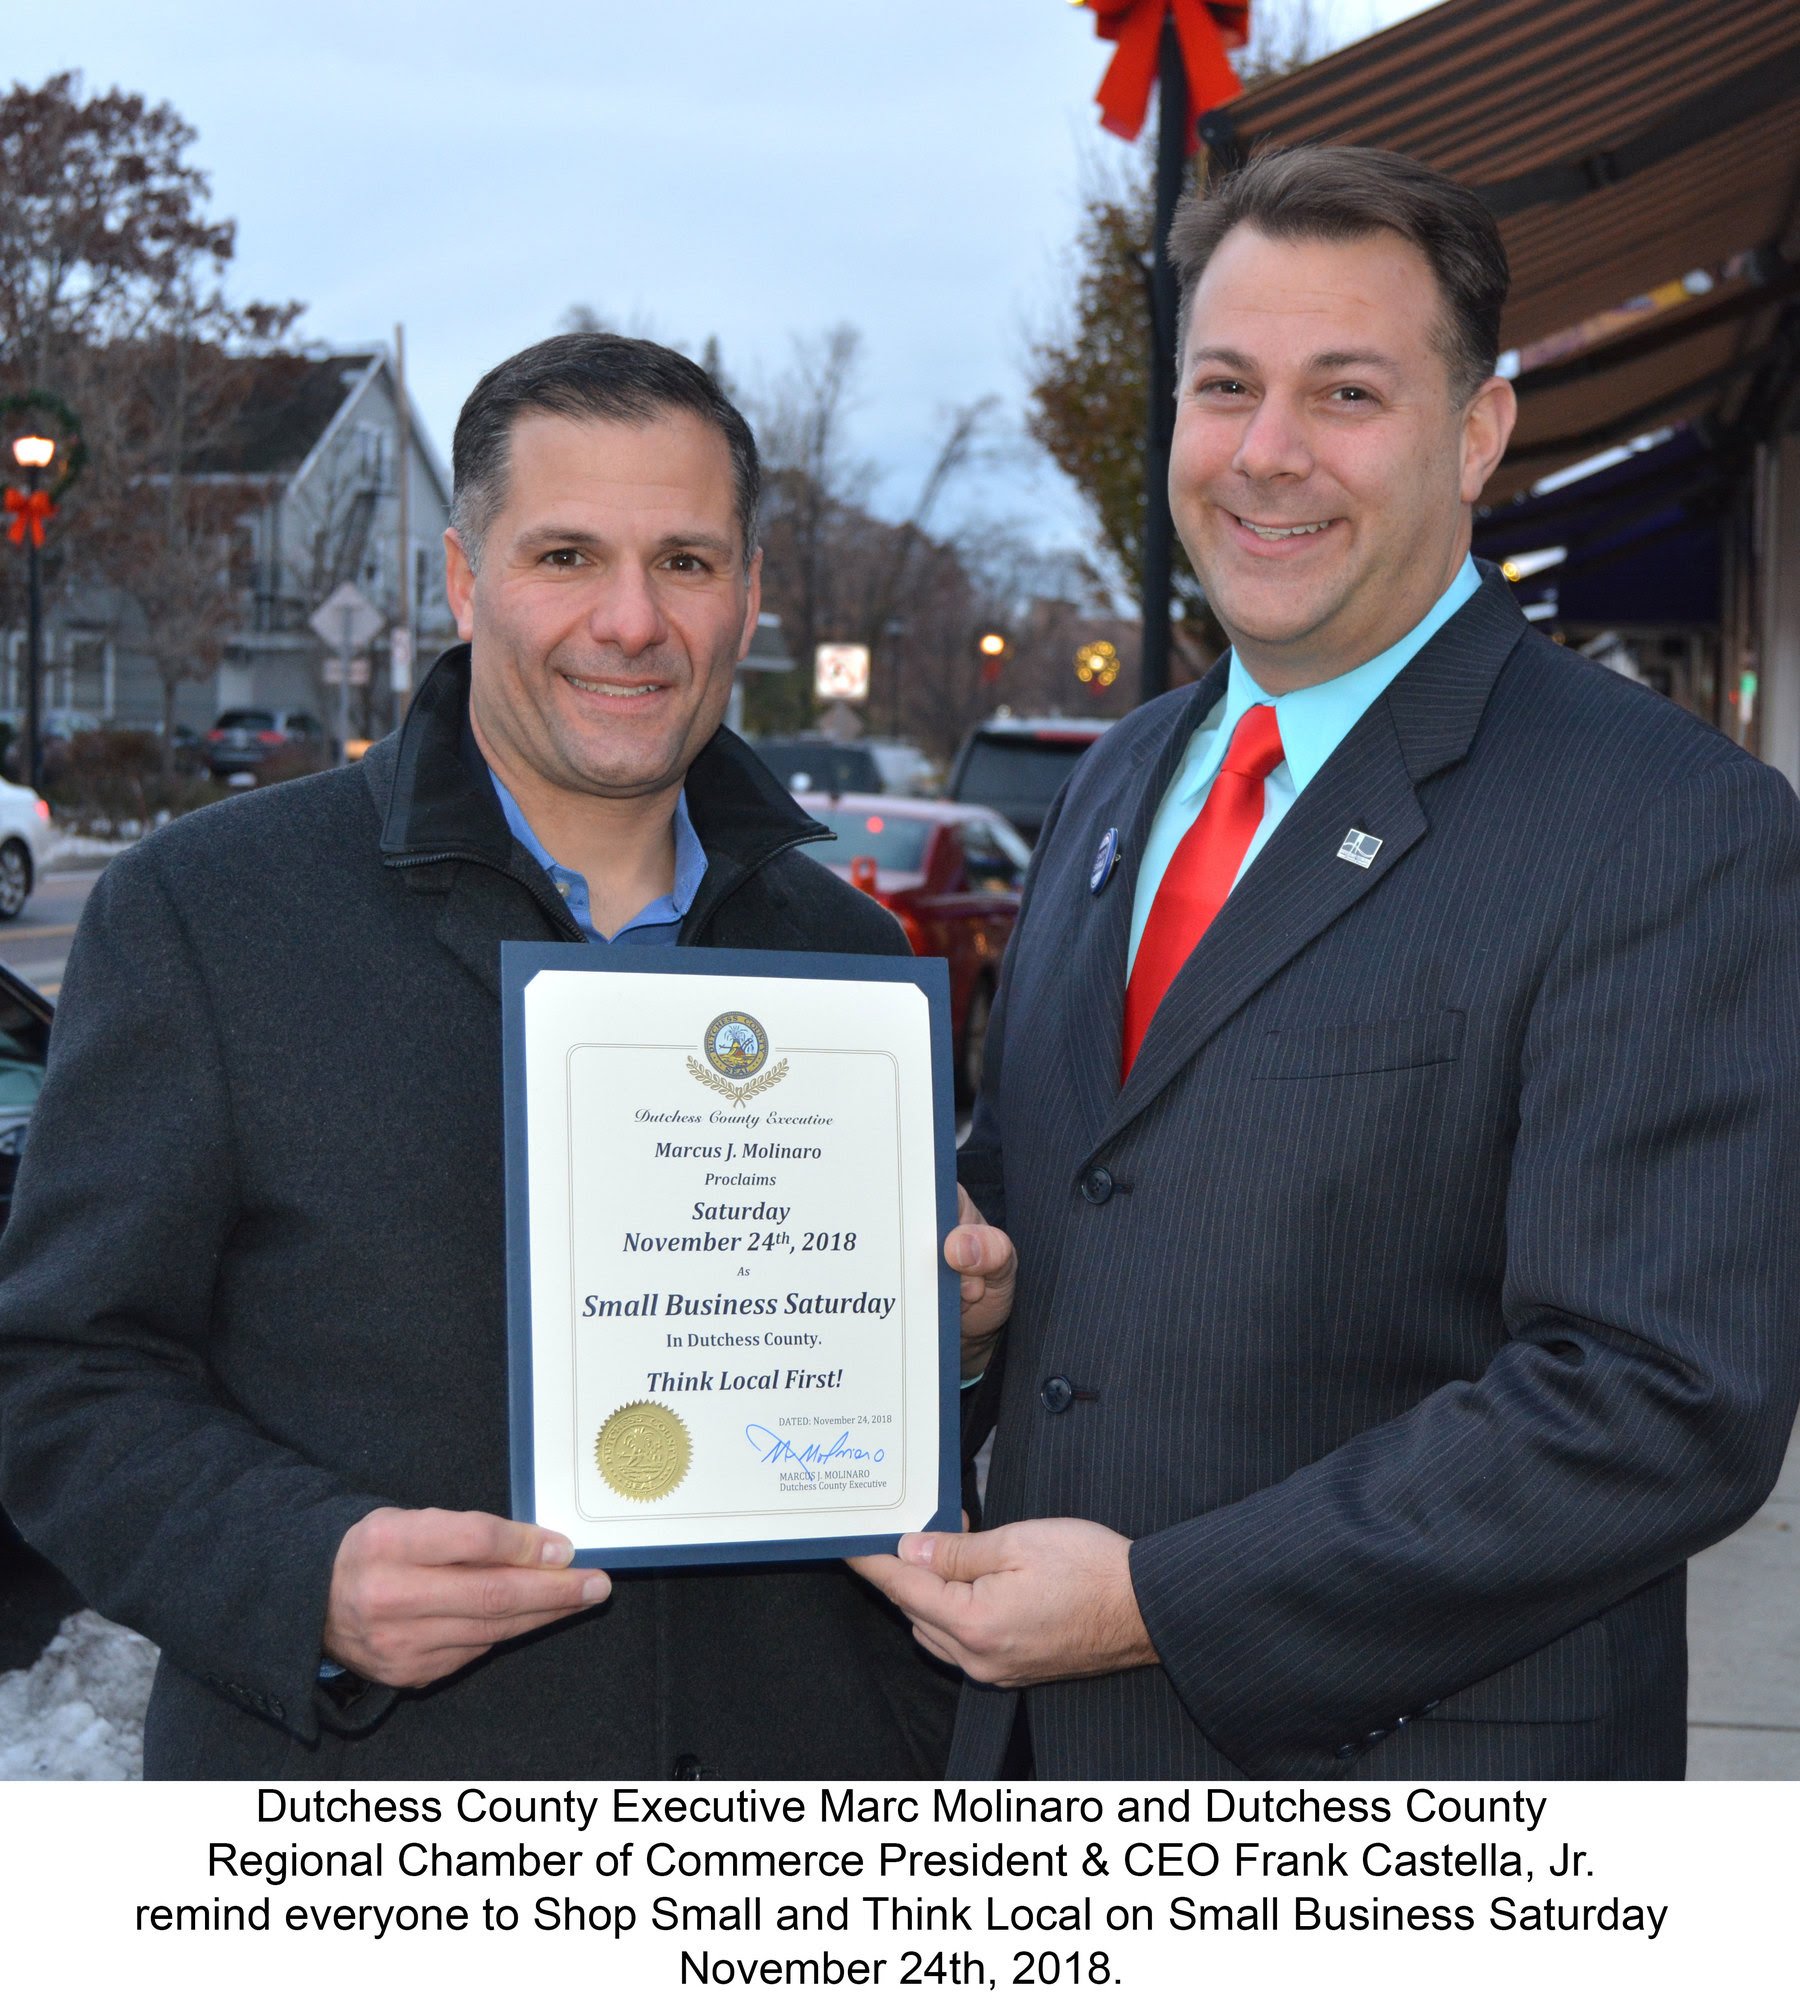 Saturday, November 24th is Small Business Saturday in Dutchess County